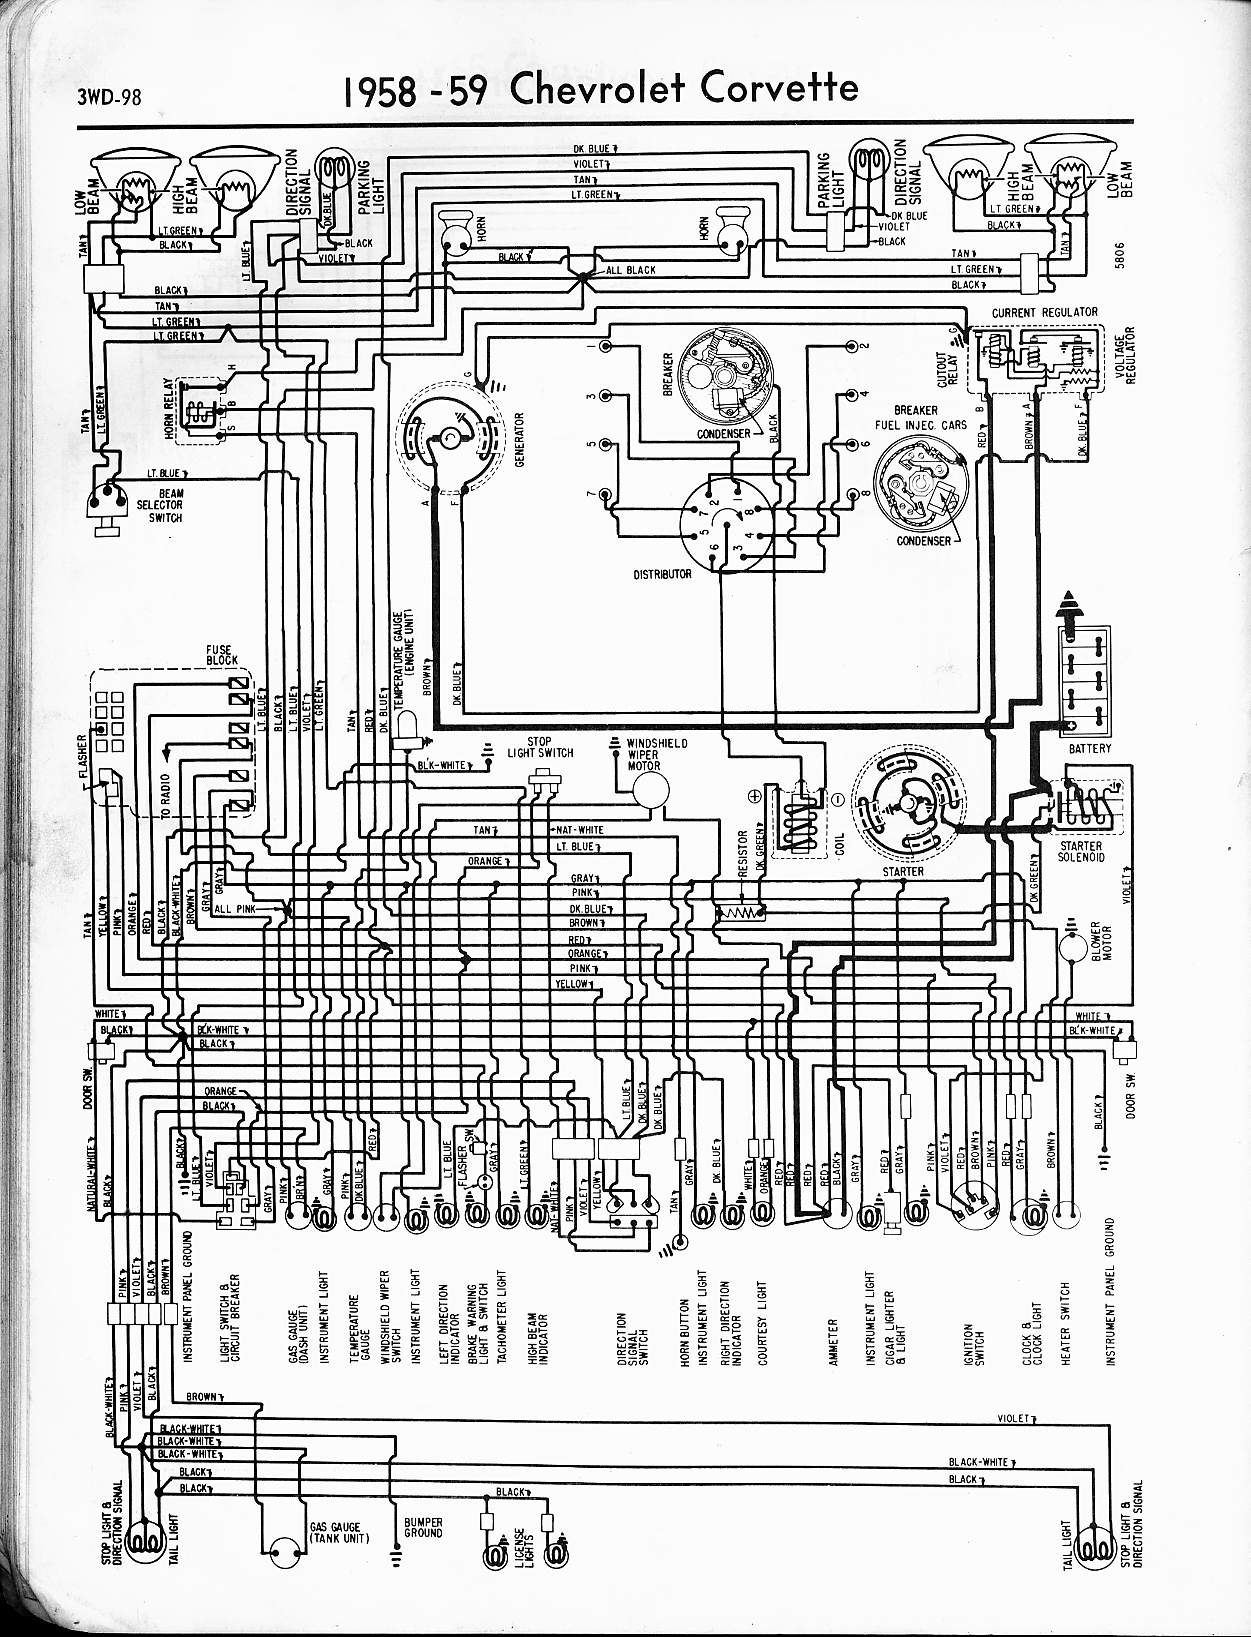 MWireChev58_3WD 098 57 65 chevy wiring diagrams 1968 corvette wiring diagram free at nearapp.co